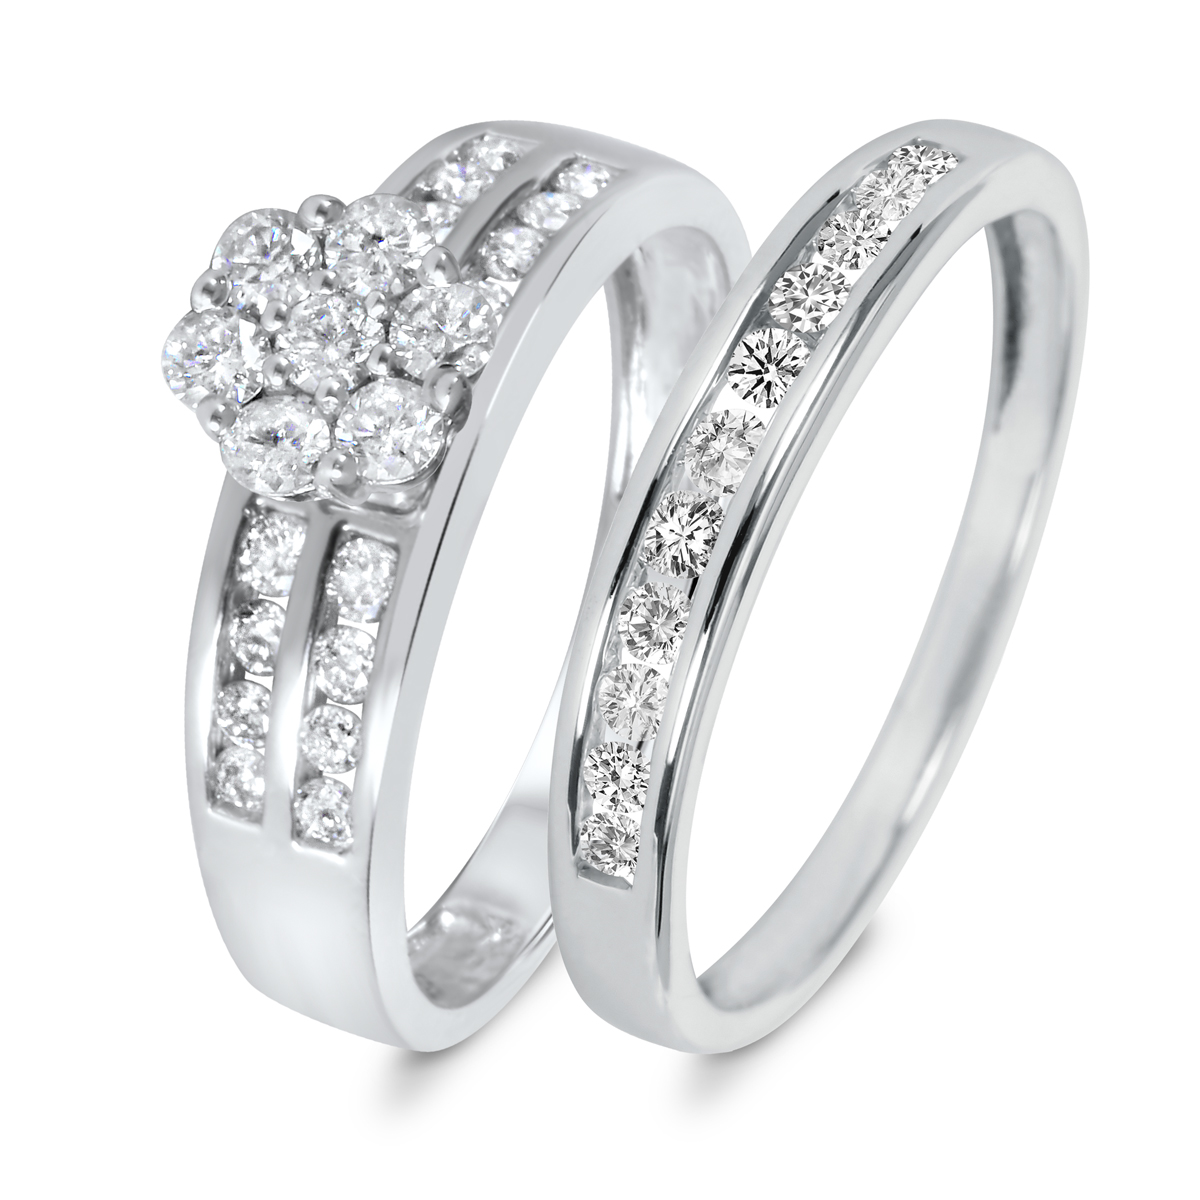 T.W. Diamond Womenu0027s Bridal Wedding Ring Set 10K White Gold